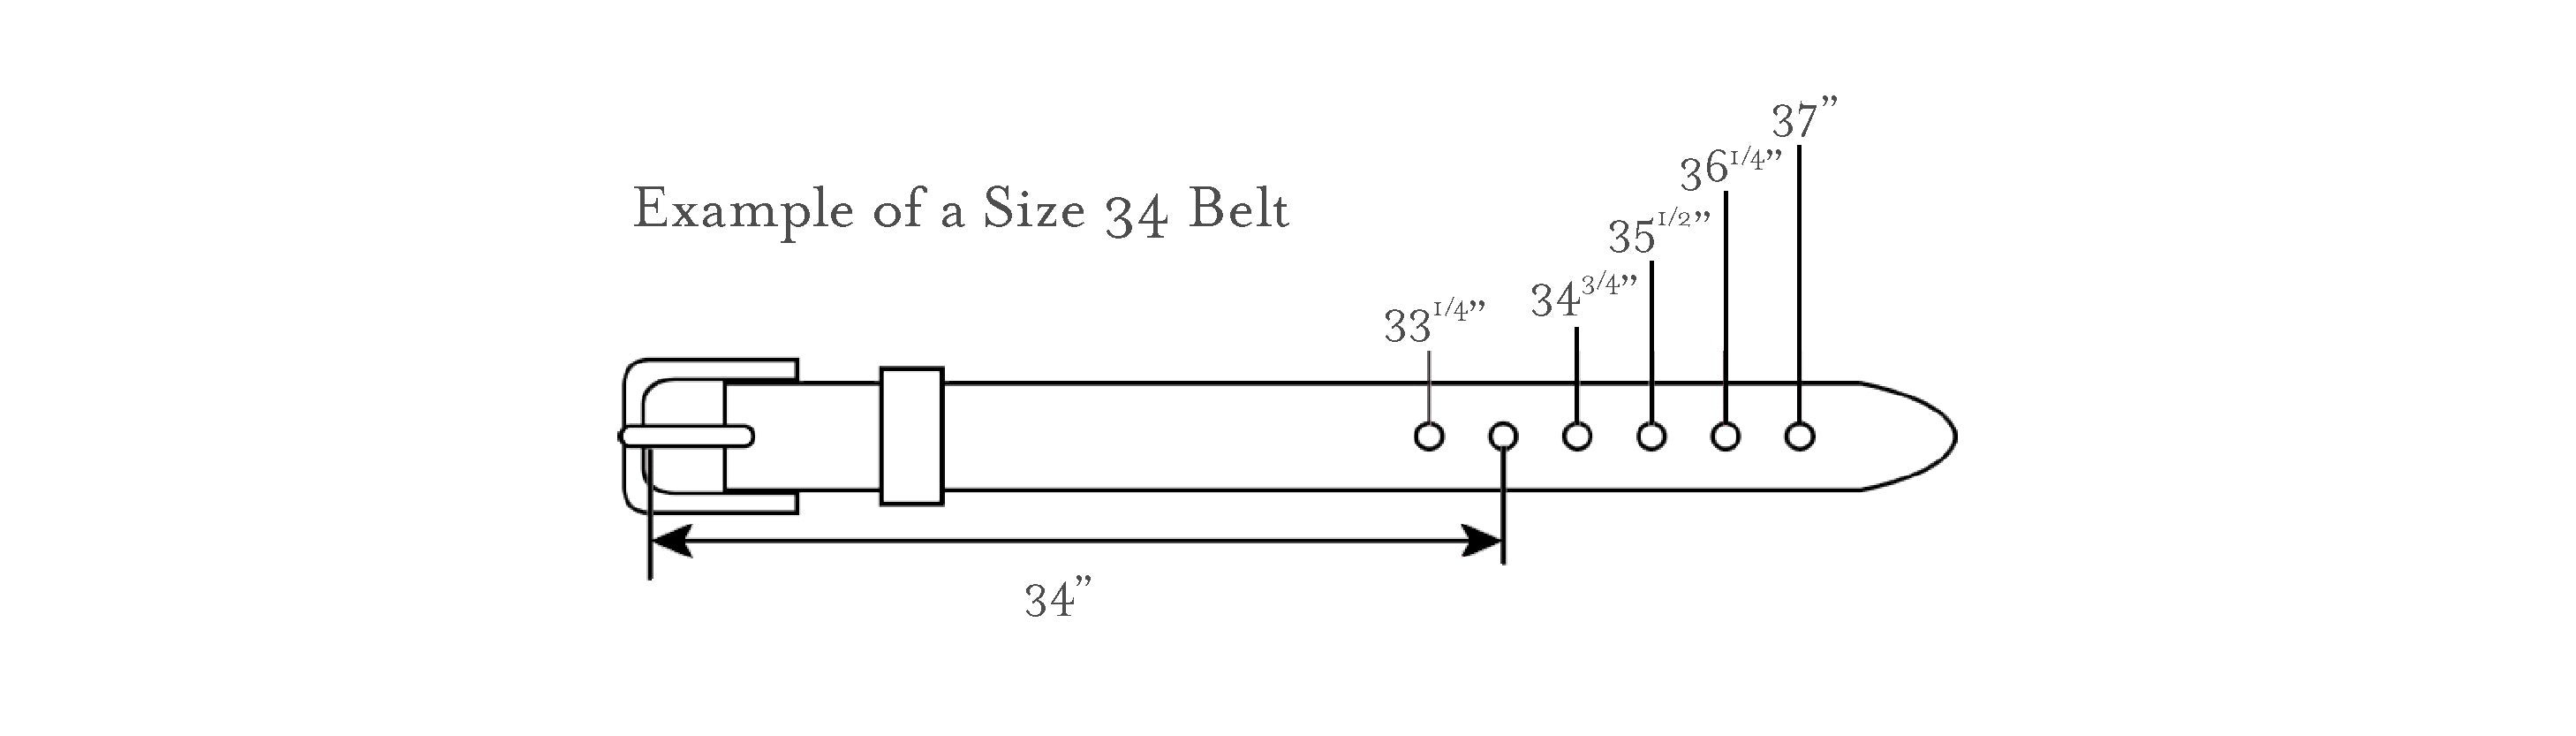 Kilim belt sizing guide